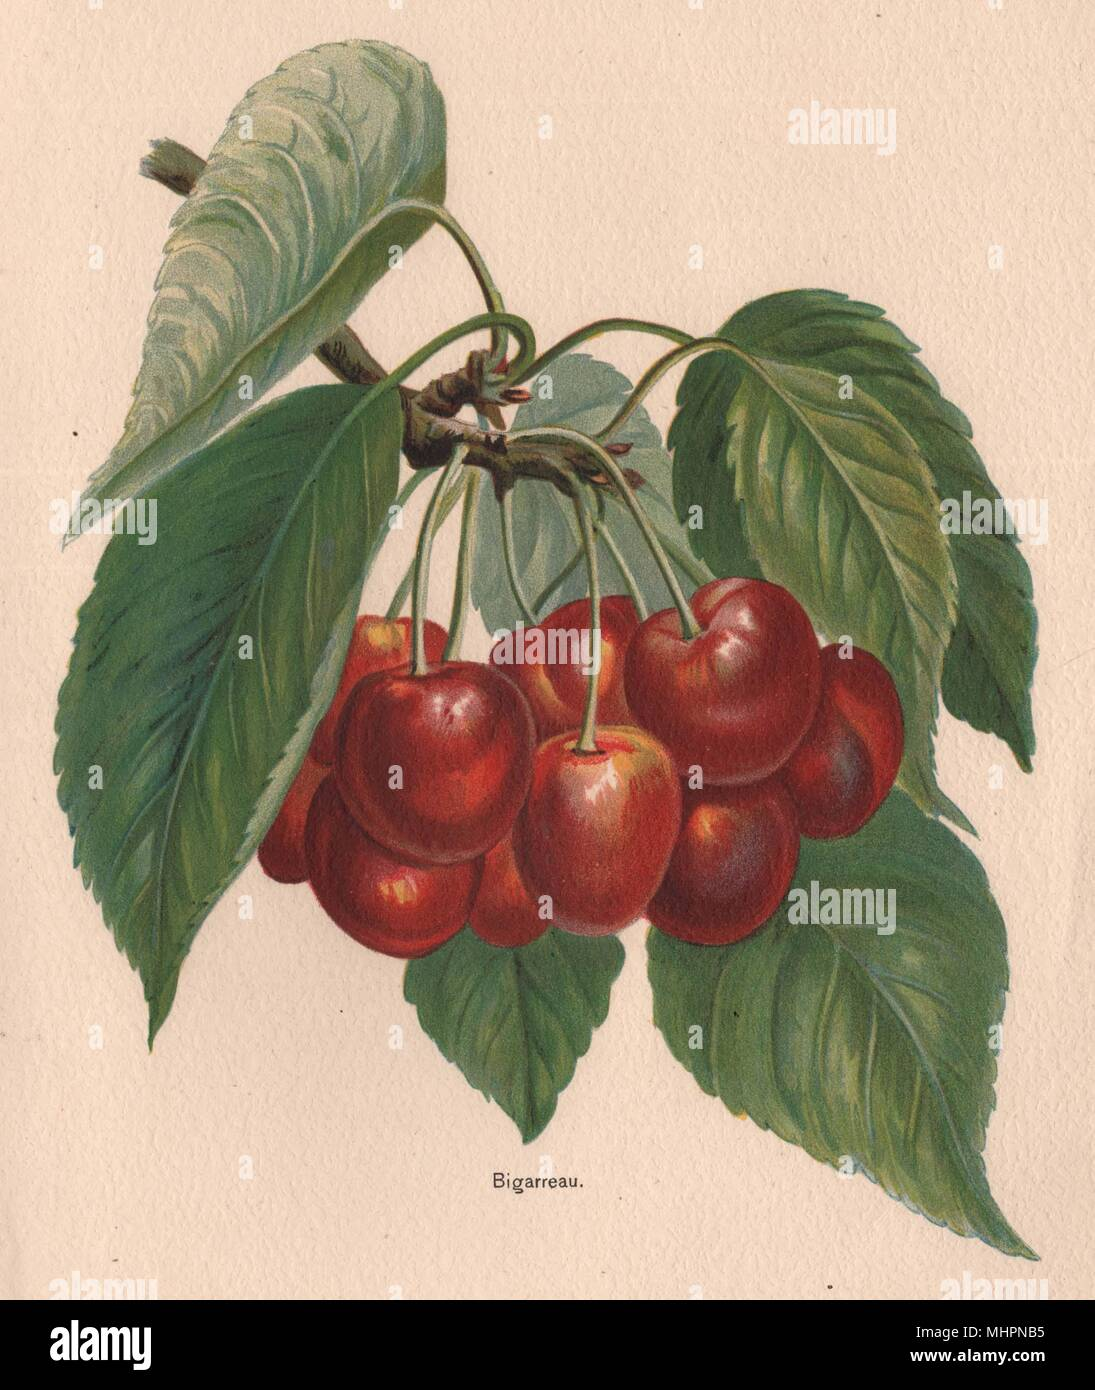 CHERRIES. Bigarreau. WRIGHT Chromolithograph 1892 old antique print picture - Stock Image